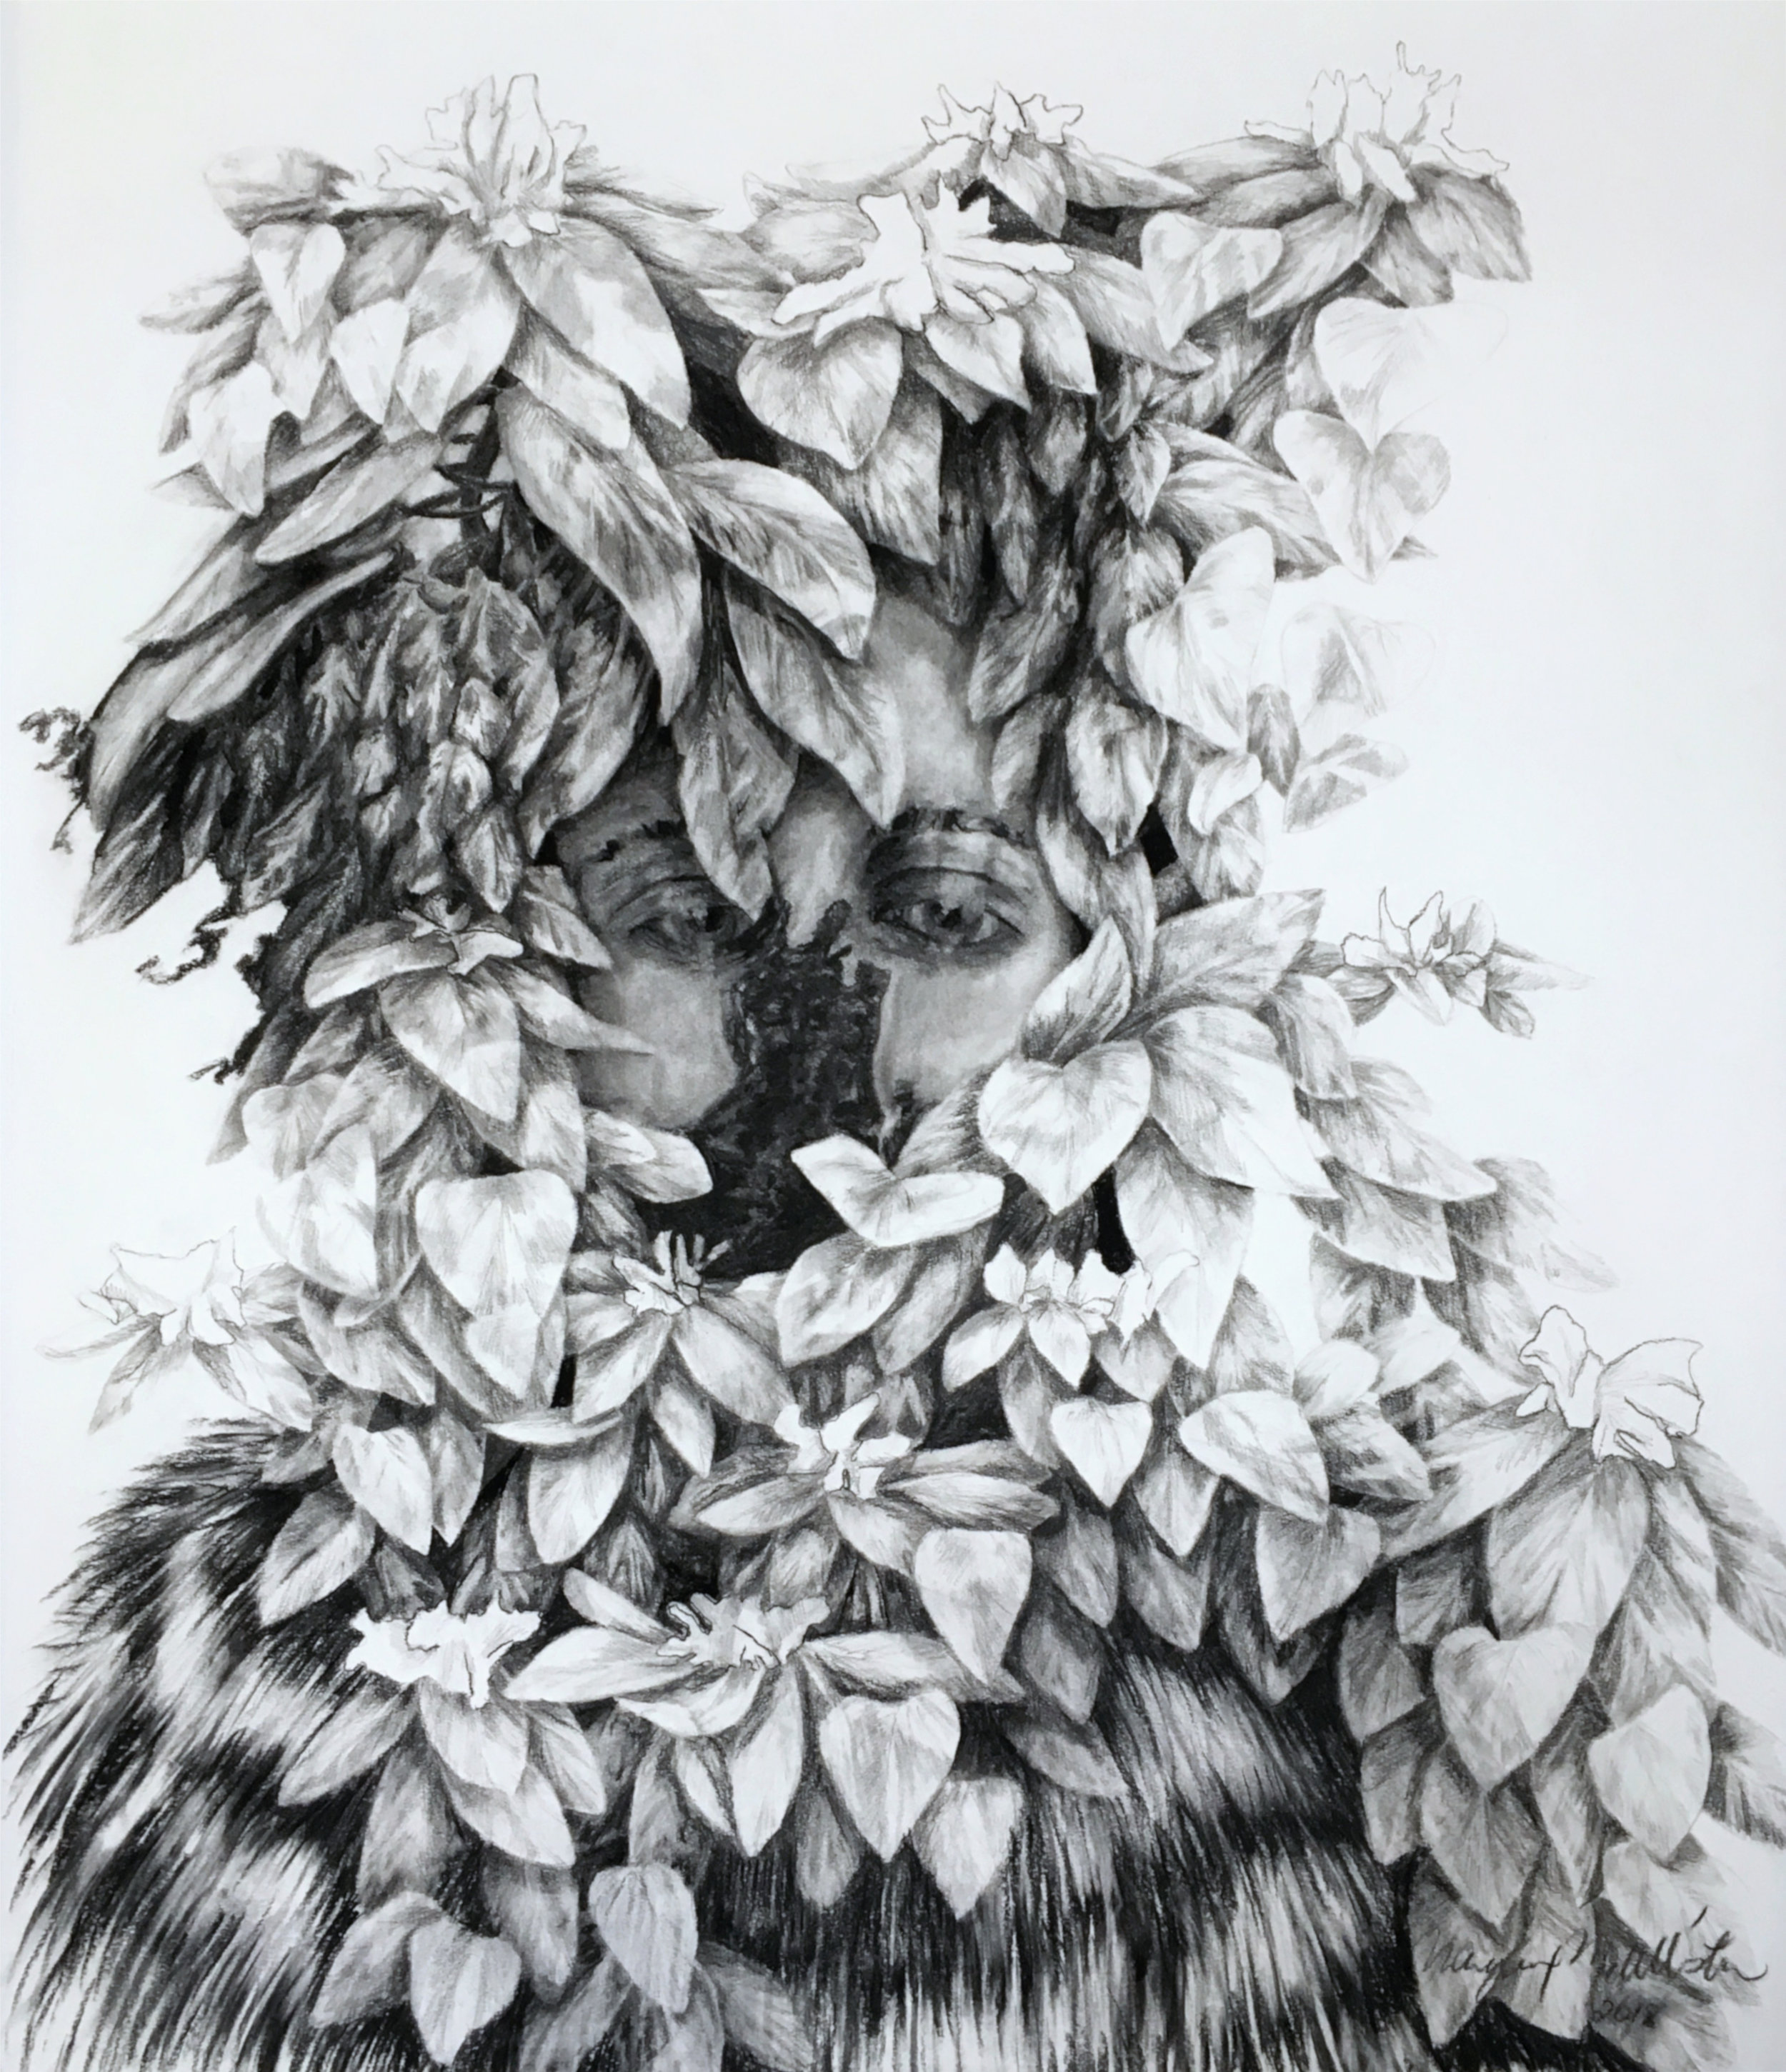 Hide , charcoal on paper, 2018